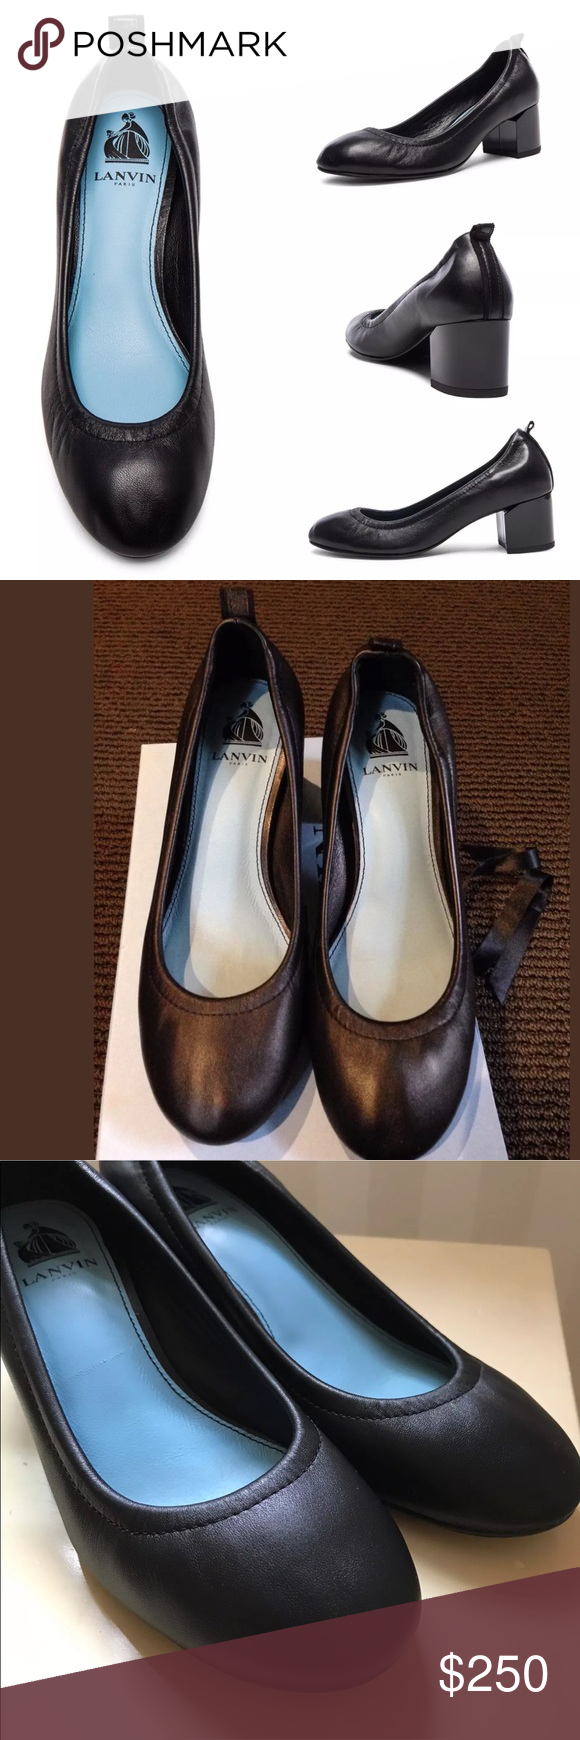 07a6ee7d0b59 Lanvin Black Leather Cube-Heel Ballerina Pump NEW WITH BOX. Lanvin Leather  Chunky-